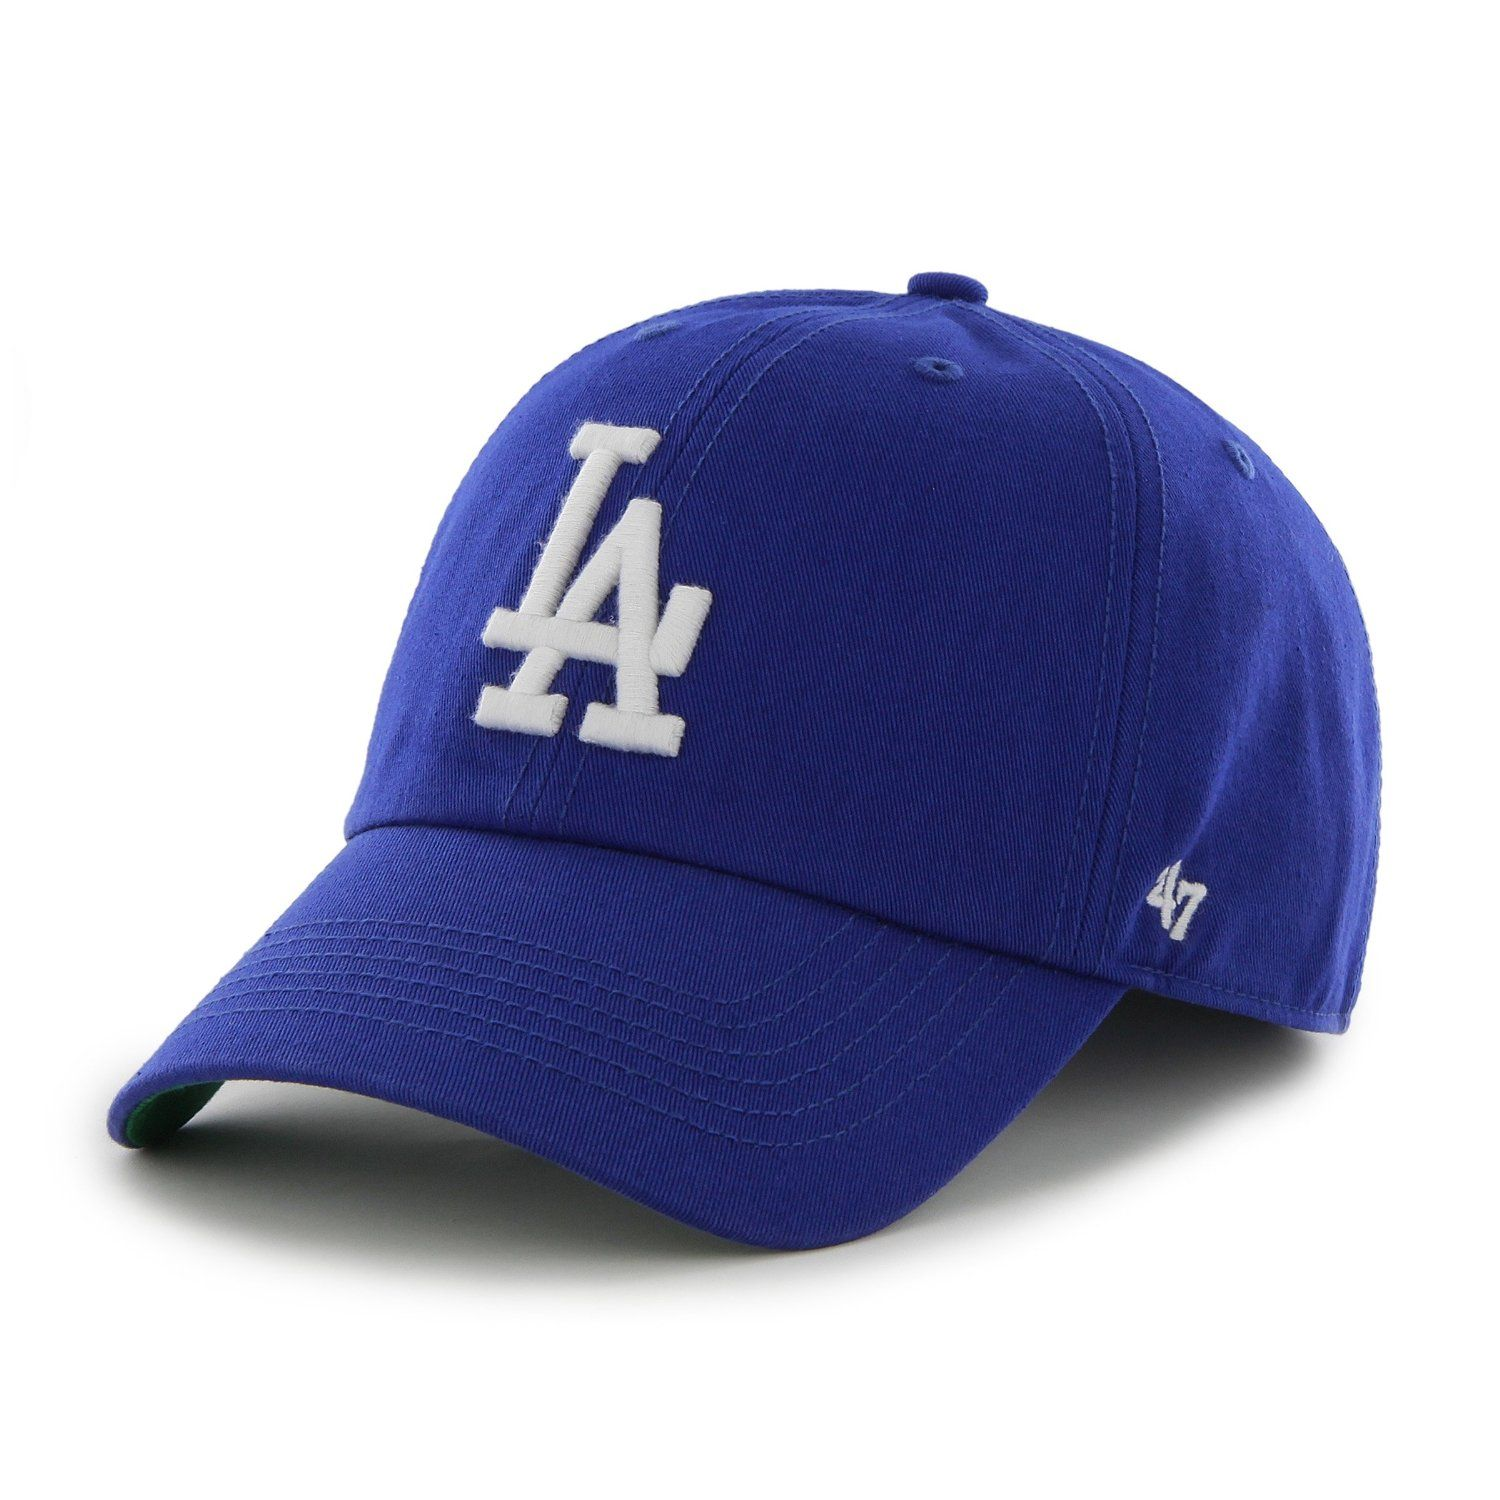 MLB Los Angeles Dodgers  47 Franchise Fitted Hat 3769da59790